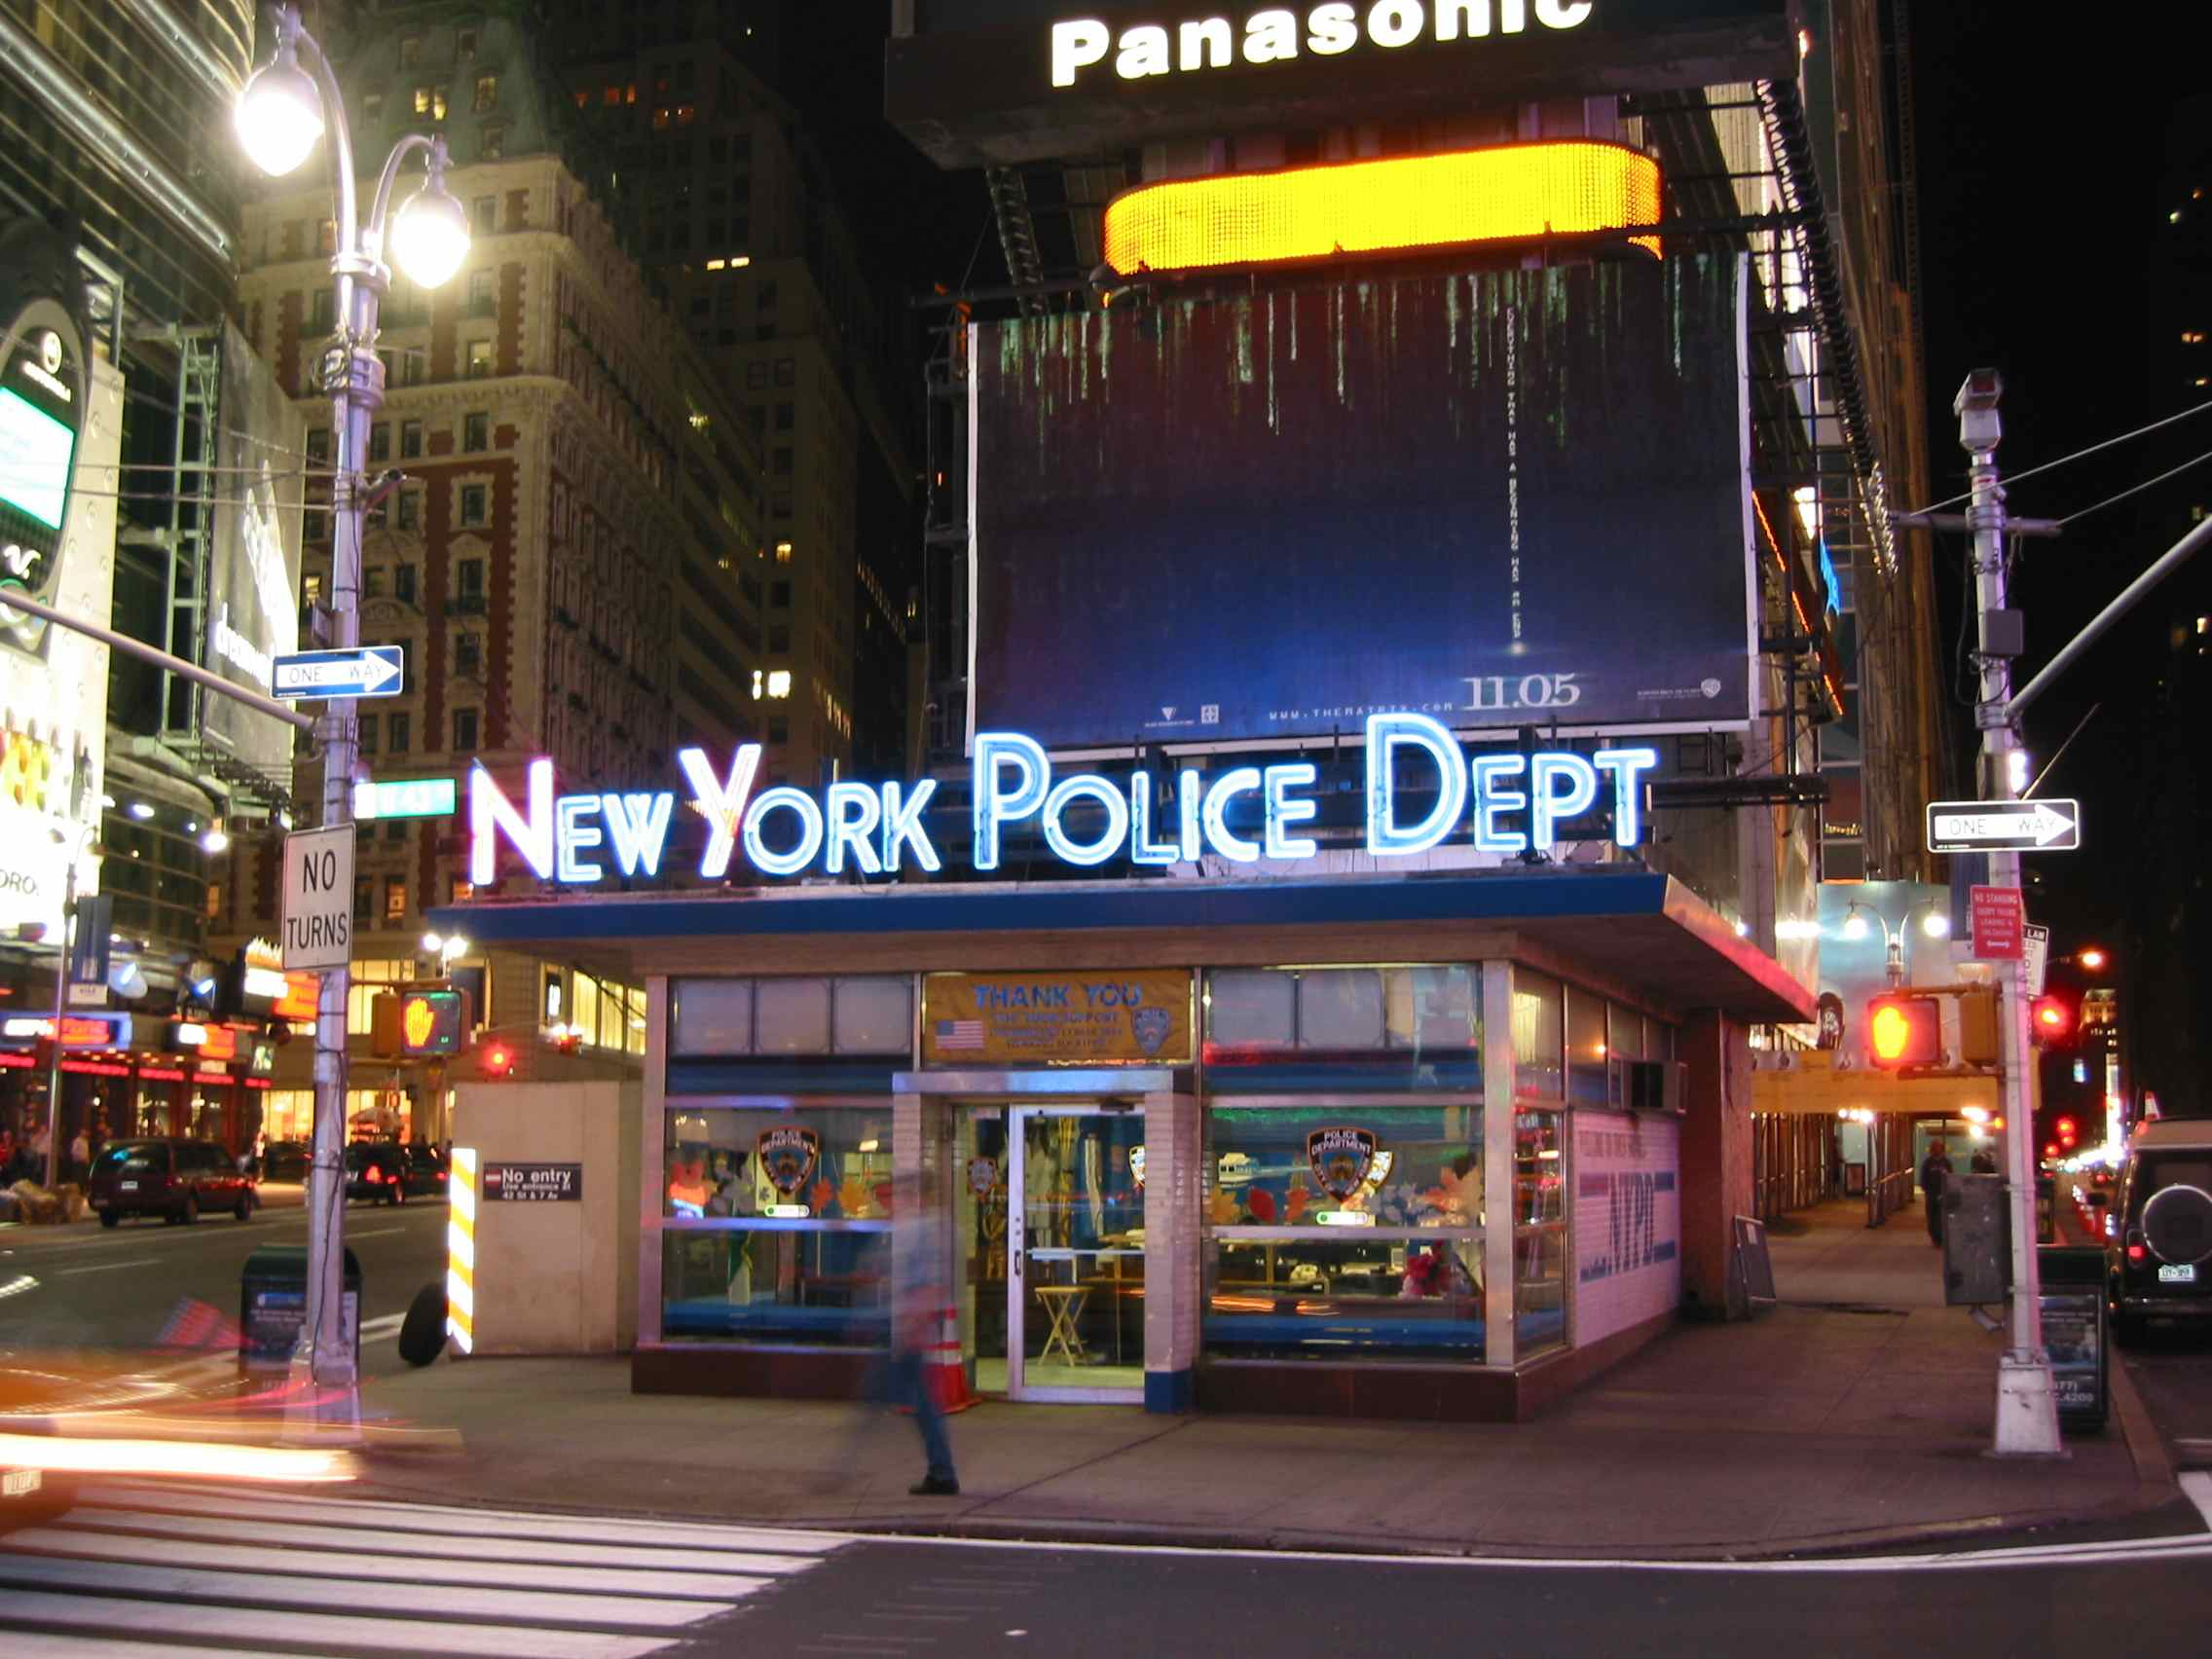 Time's Square Police Station